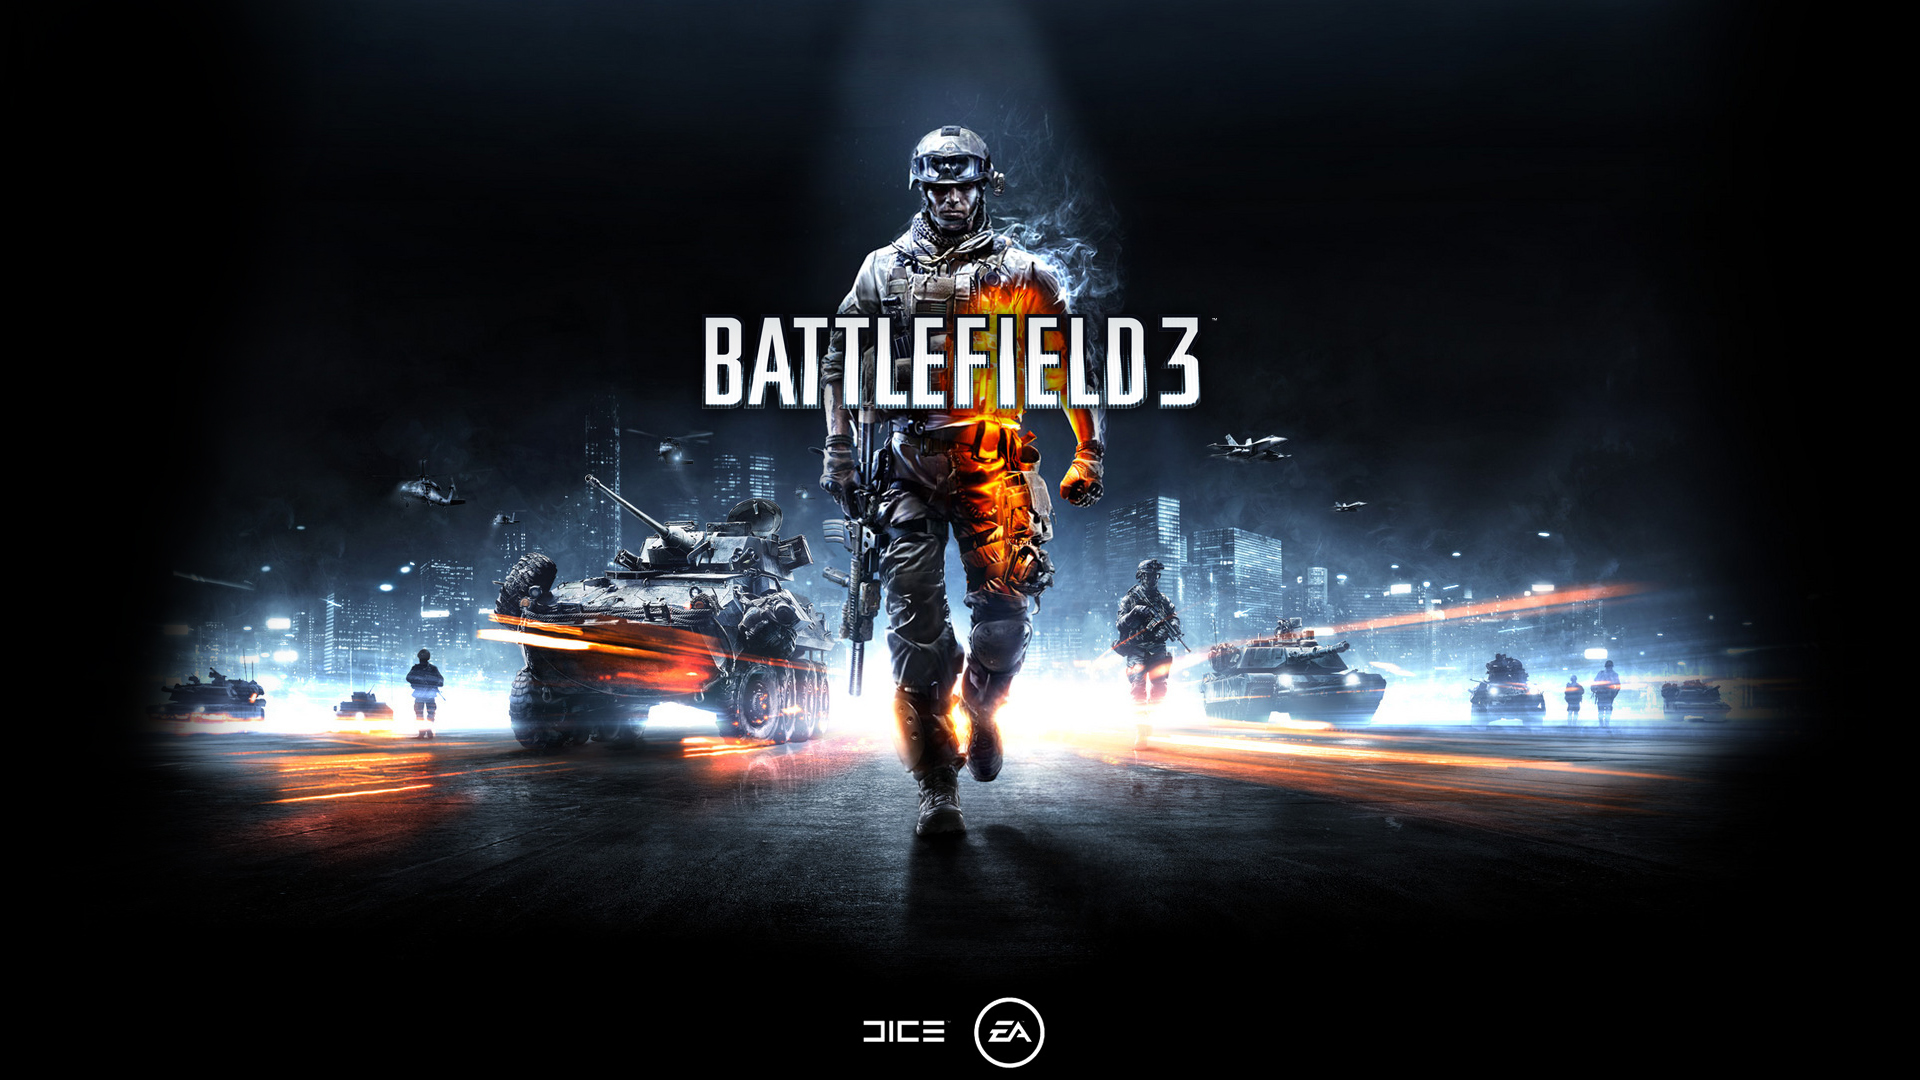 bf31080p